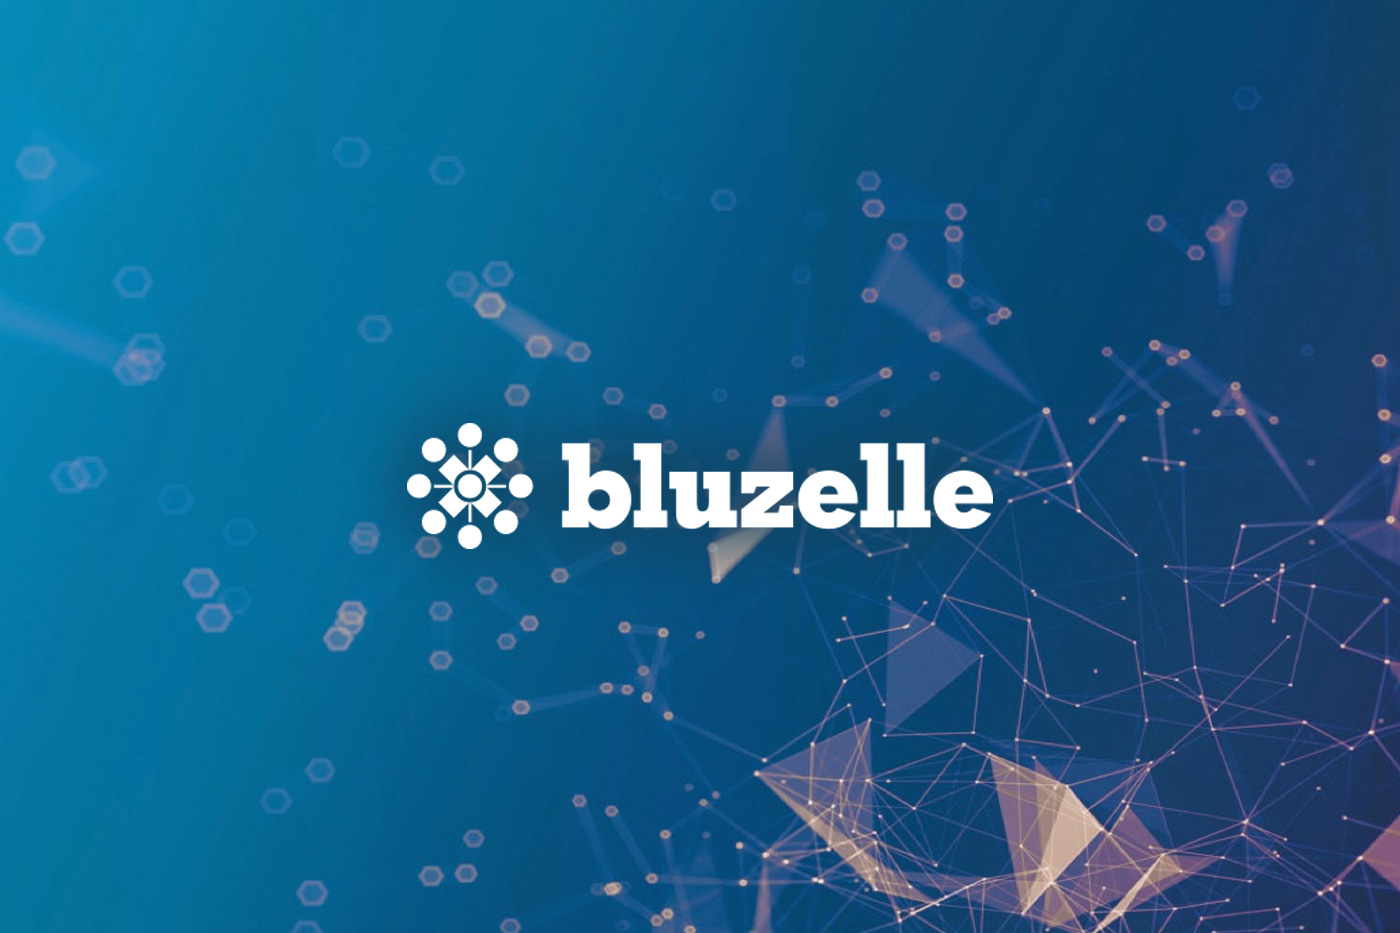 With BLUZELLE- Data Storage Has Never Been Easier